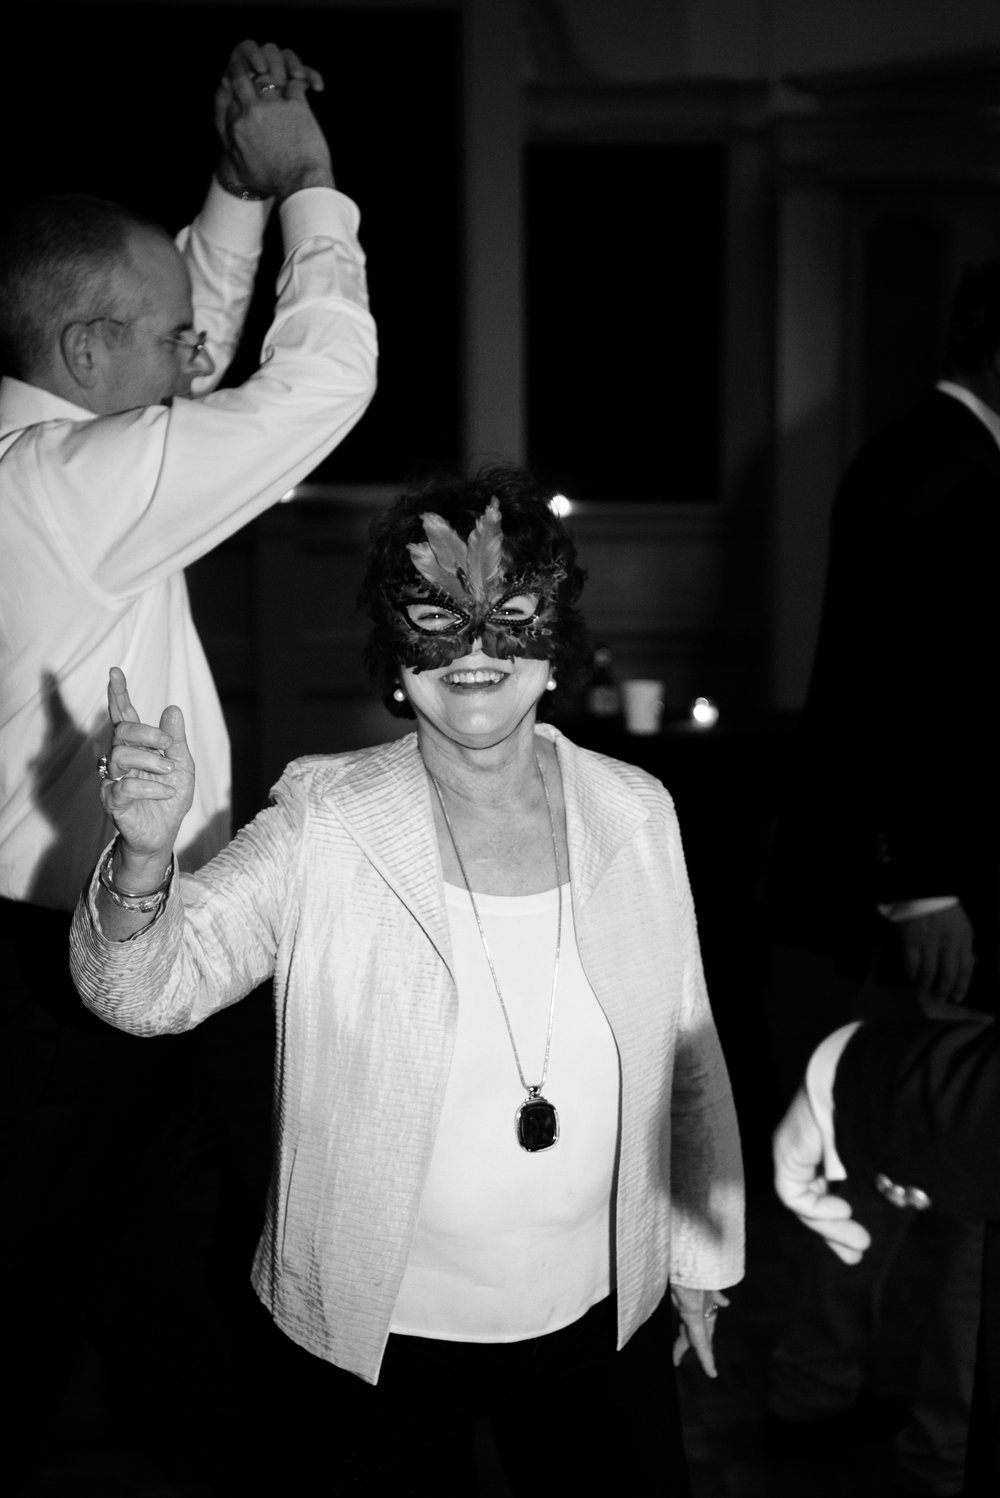 NewOrleansWedding (43 of 48).jpg